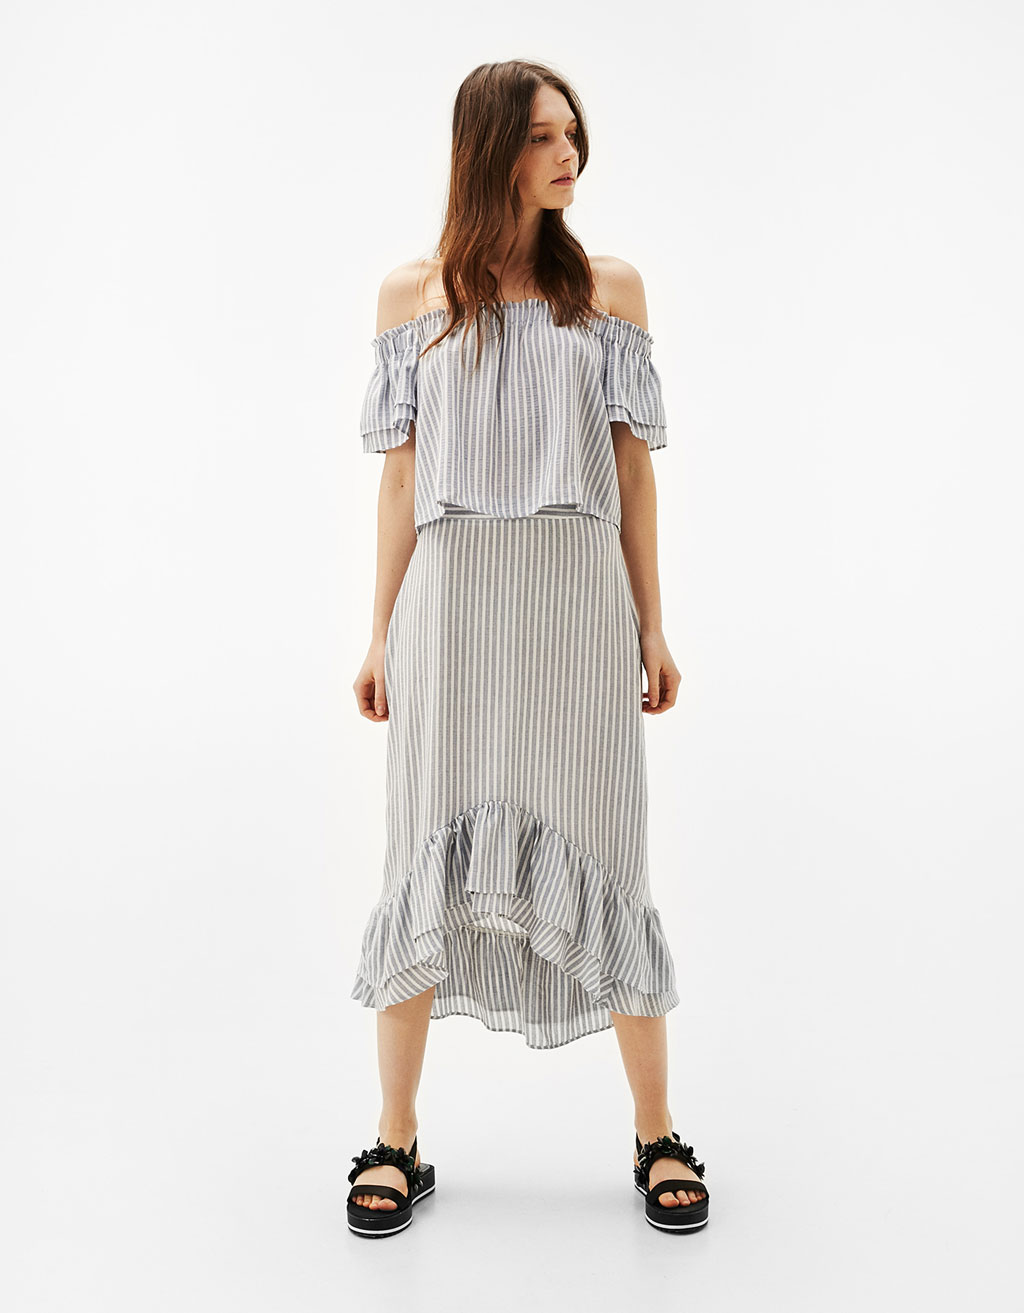 Striped asymmetric skirt with ruffled trimming